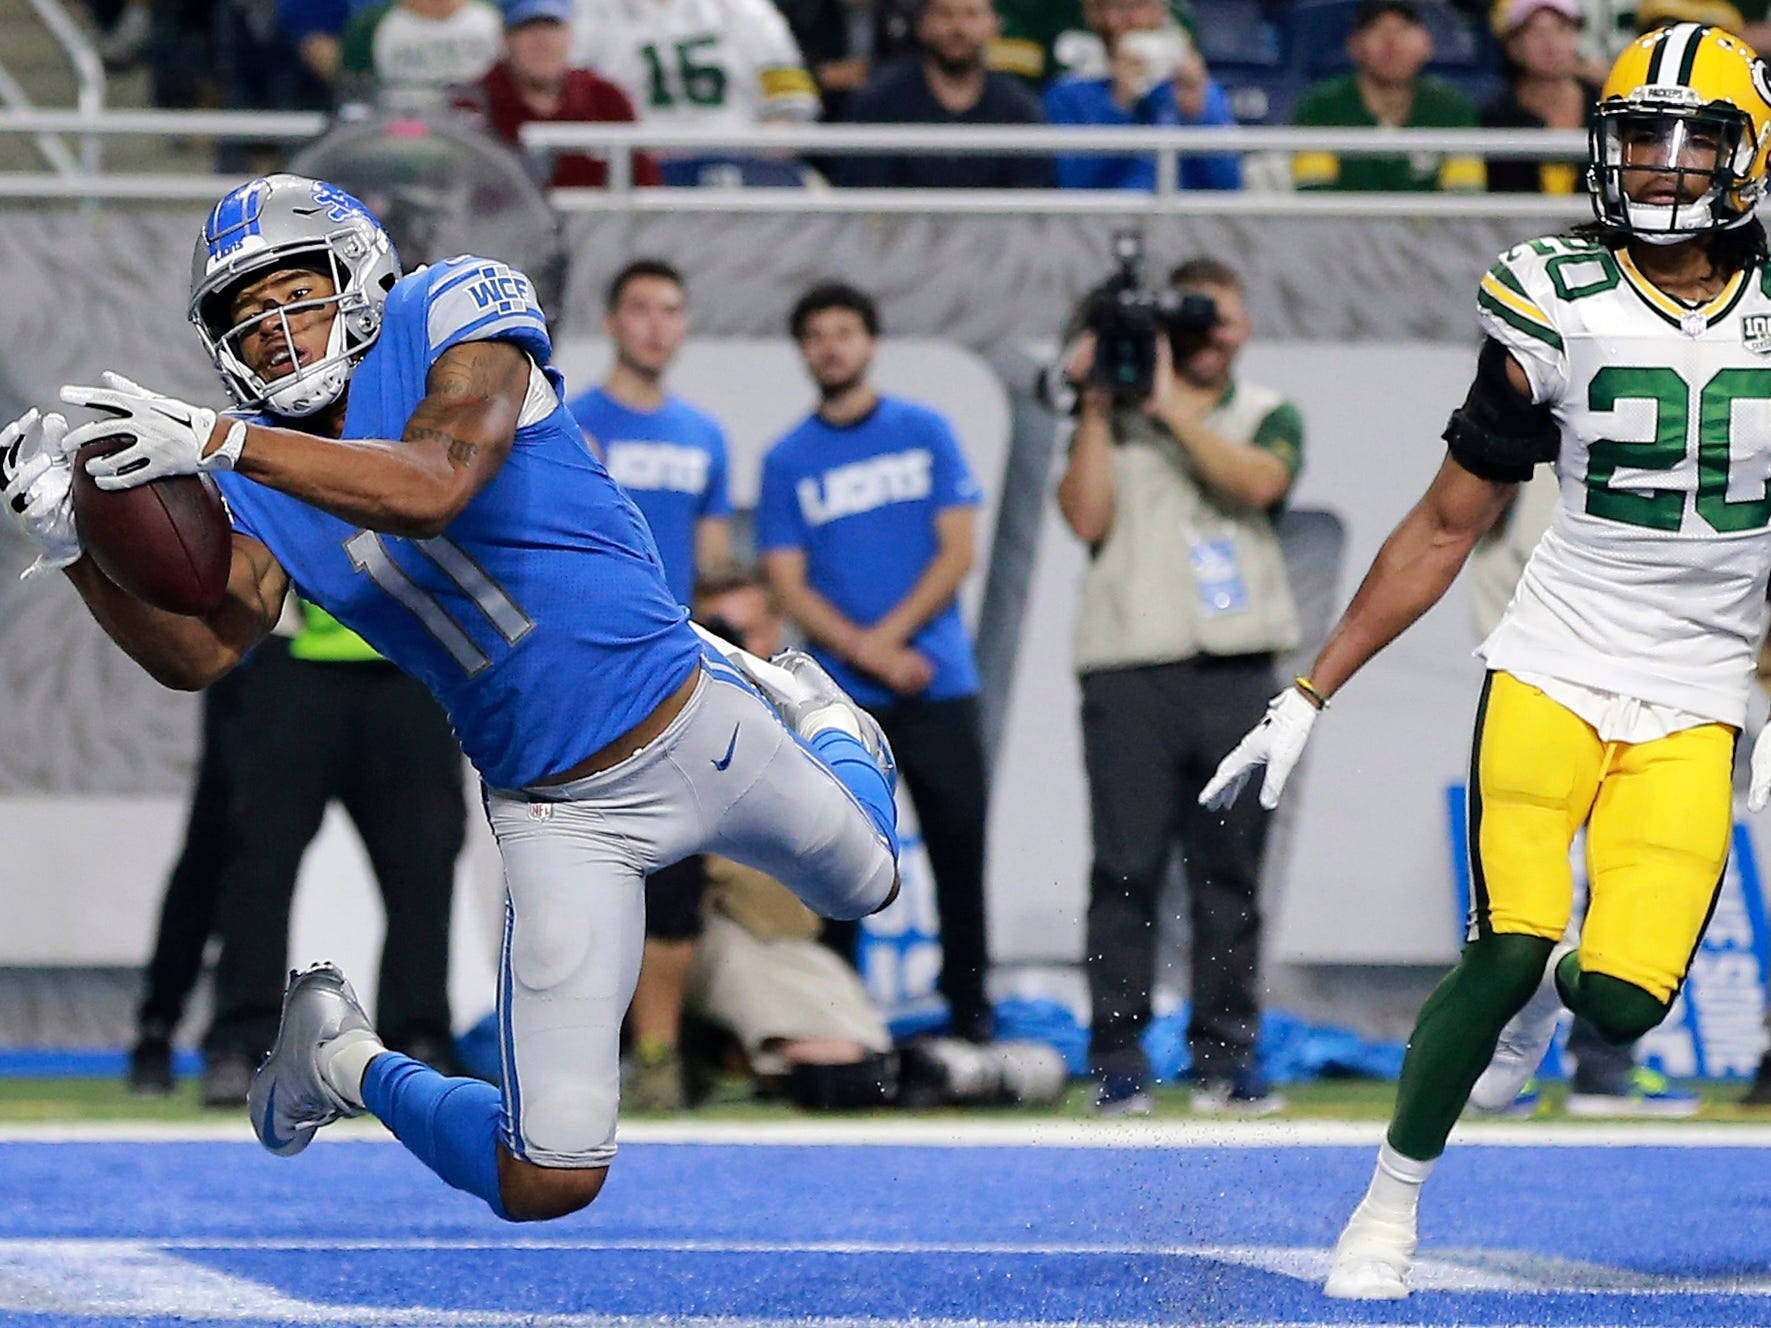 Detroit Lions wide receiver Marvin Jones (11), defended by Green Bay Packers cornerback Kevin King (20), catches an 8-yard pass for a touchdown during the first half of an NFL football game, Sunday, Oct. 7, 2018, in Detroit.